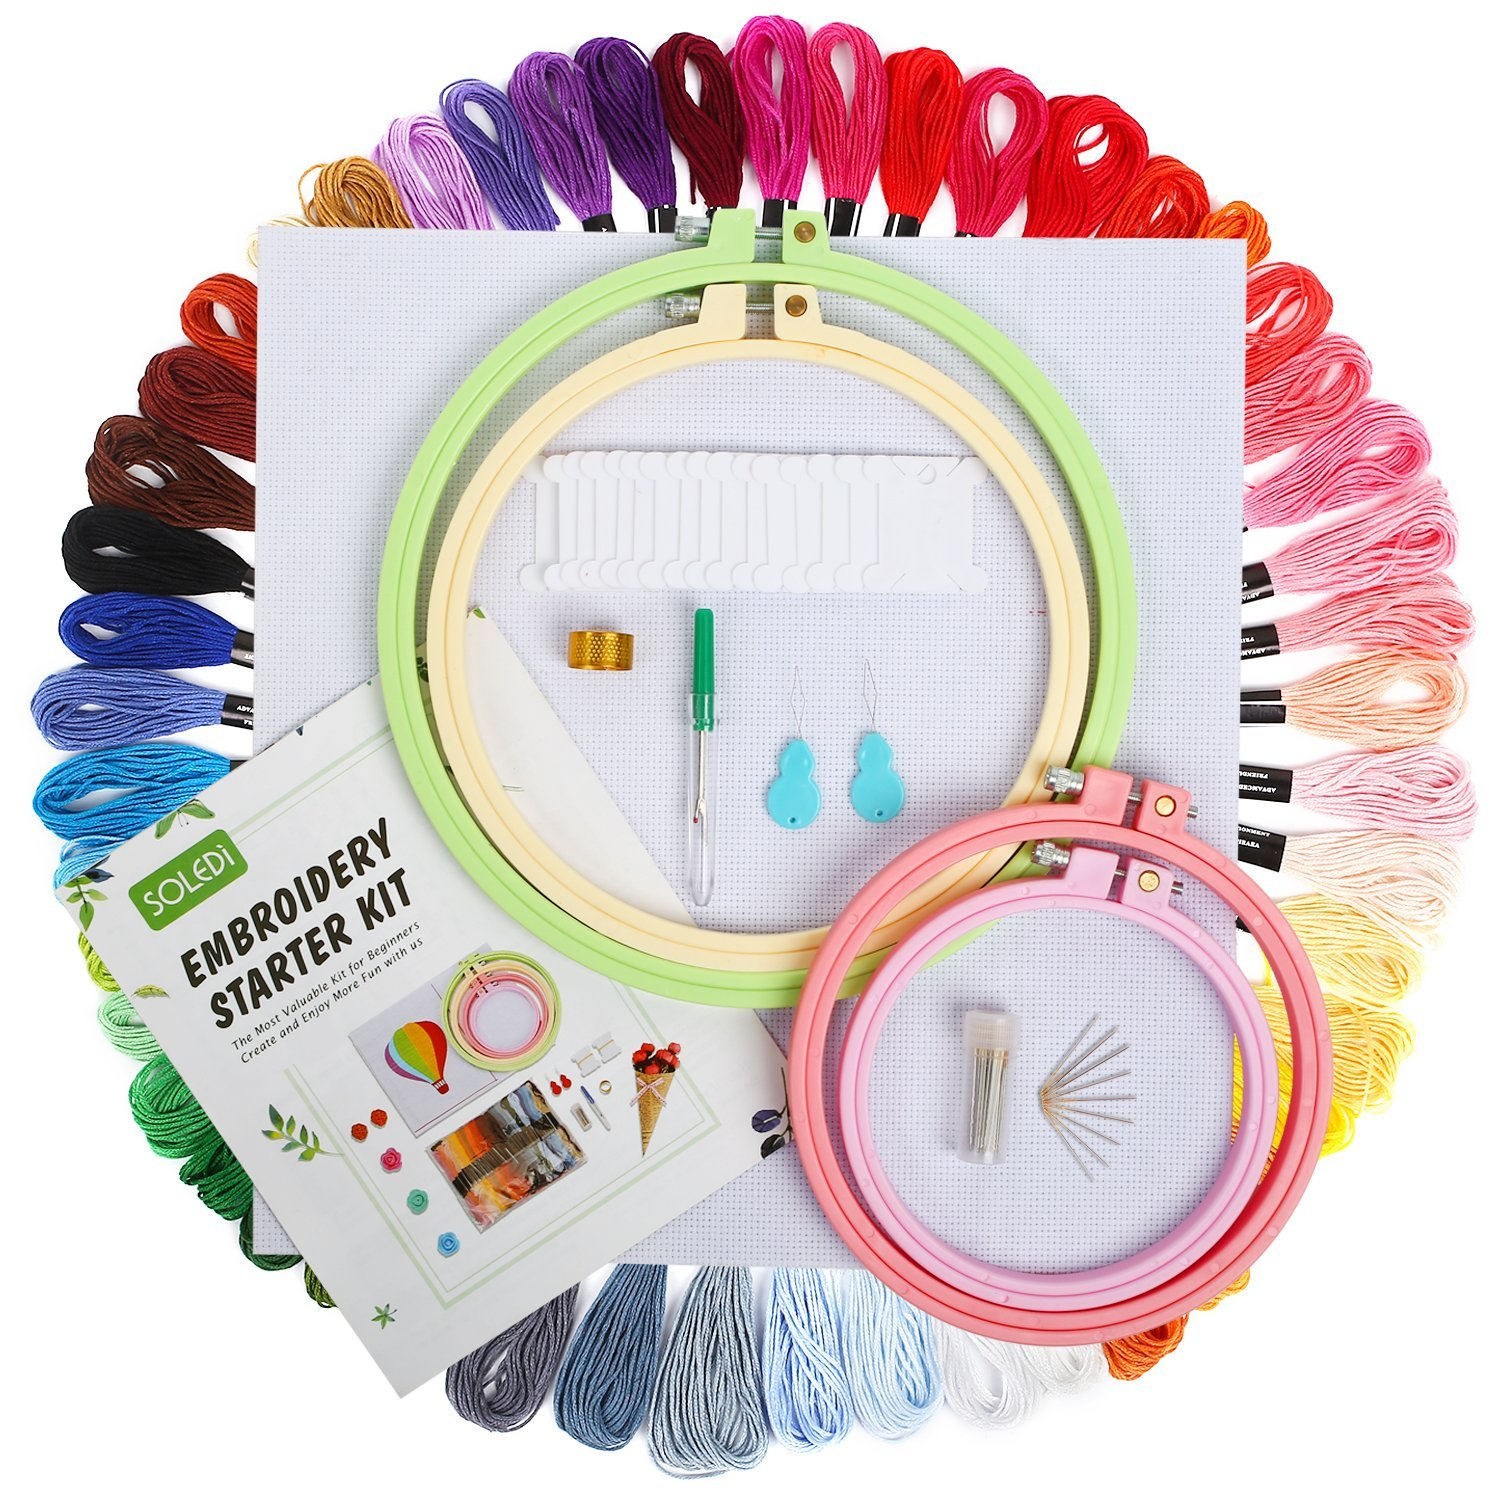 Embroidery Thread Kit Full Range of 50 Skeins Rainbow Color Embroidery floss for beginner with Embroidery Needles 12 x Floss Bobbins and Needle-Threading Tool,As Friendship Bracelets Floss SOLEDI